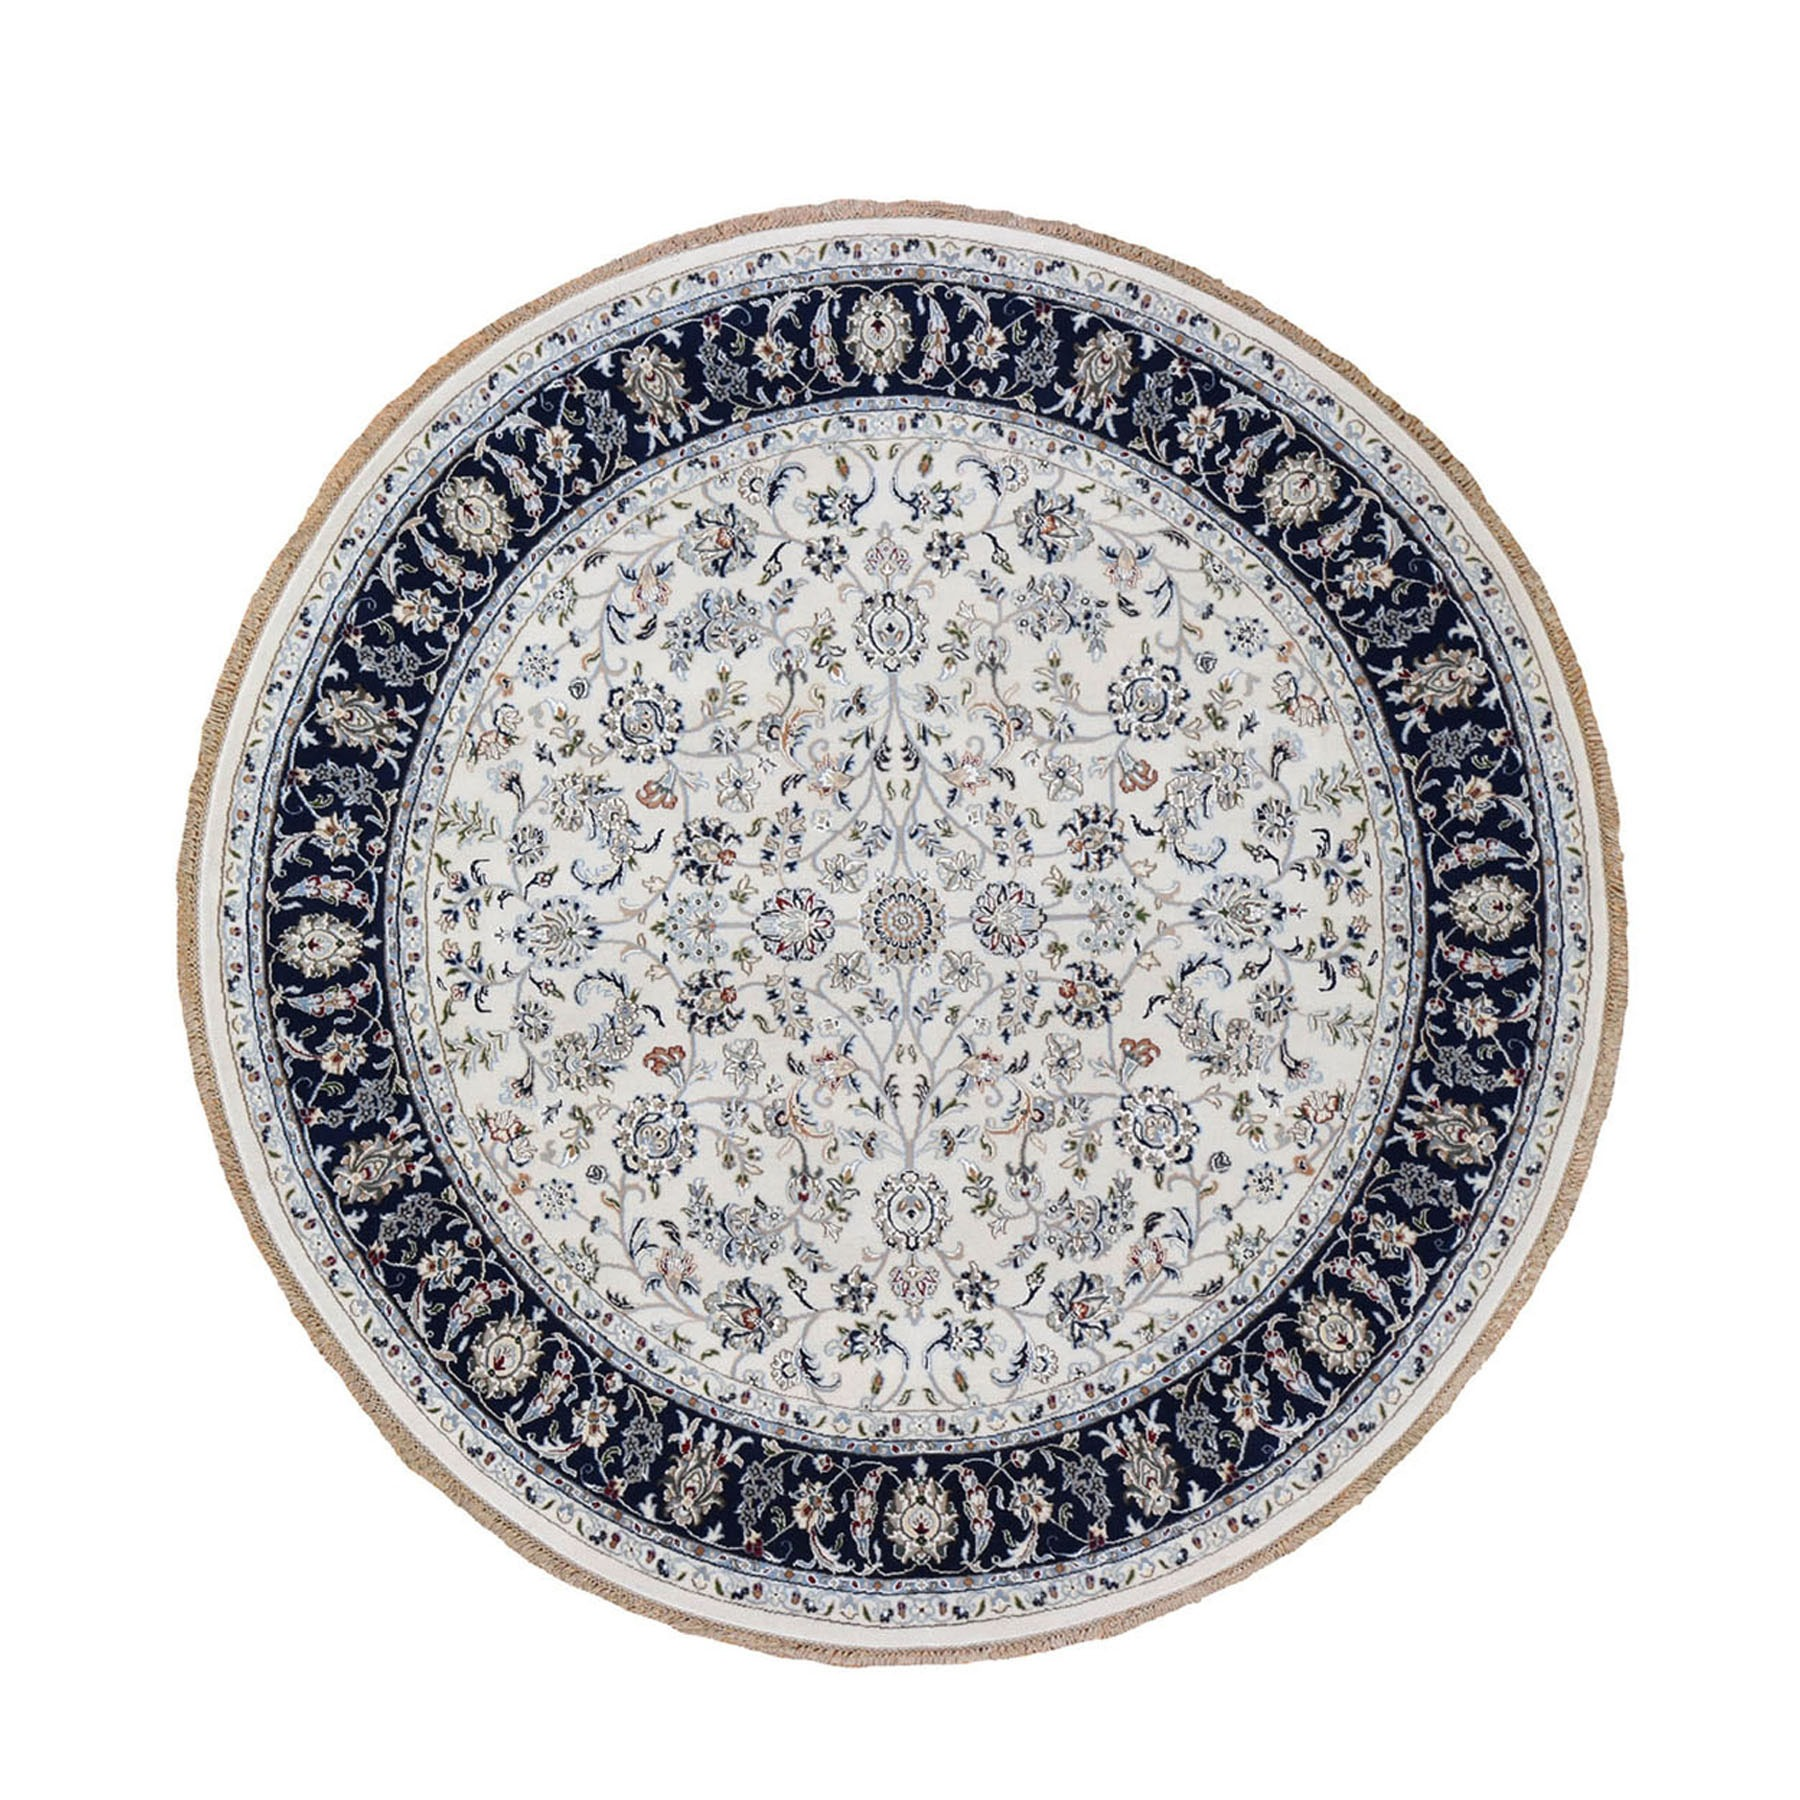 "8'1""x8'1"" Ivory Nain Wool And Silk 250 KPSI All Over Design Hand Woven Round Oriental Rug"